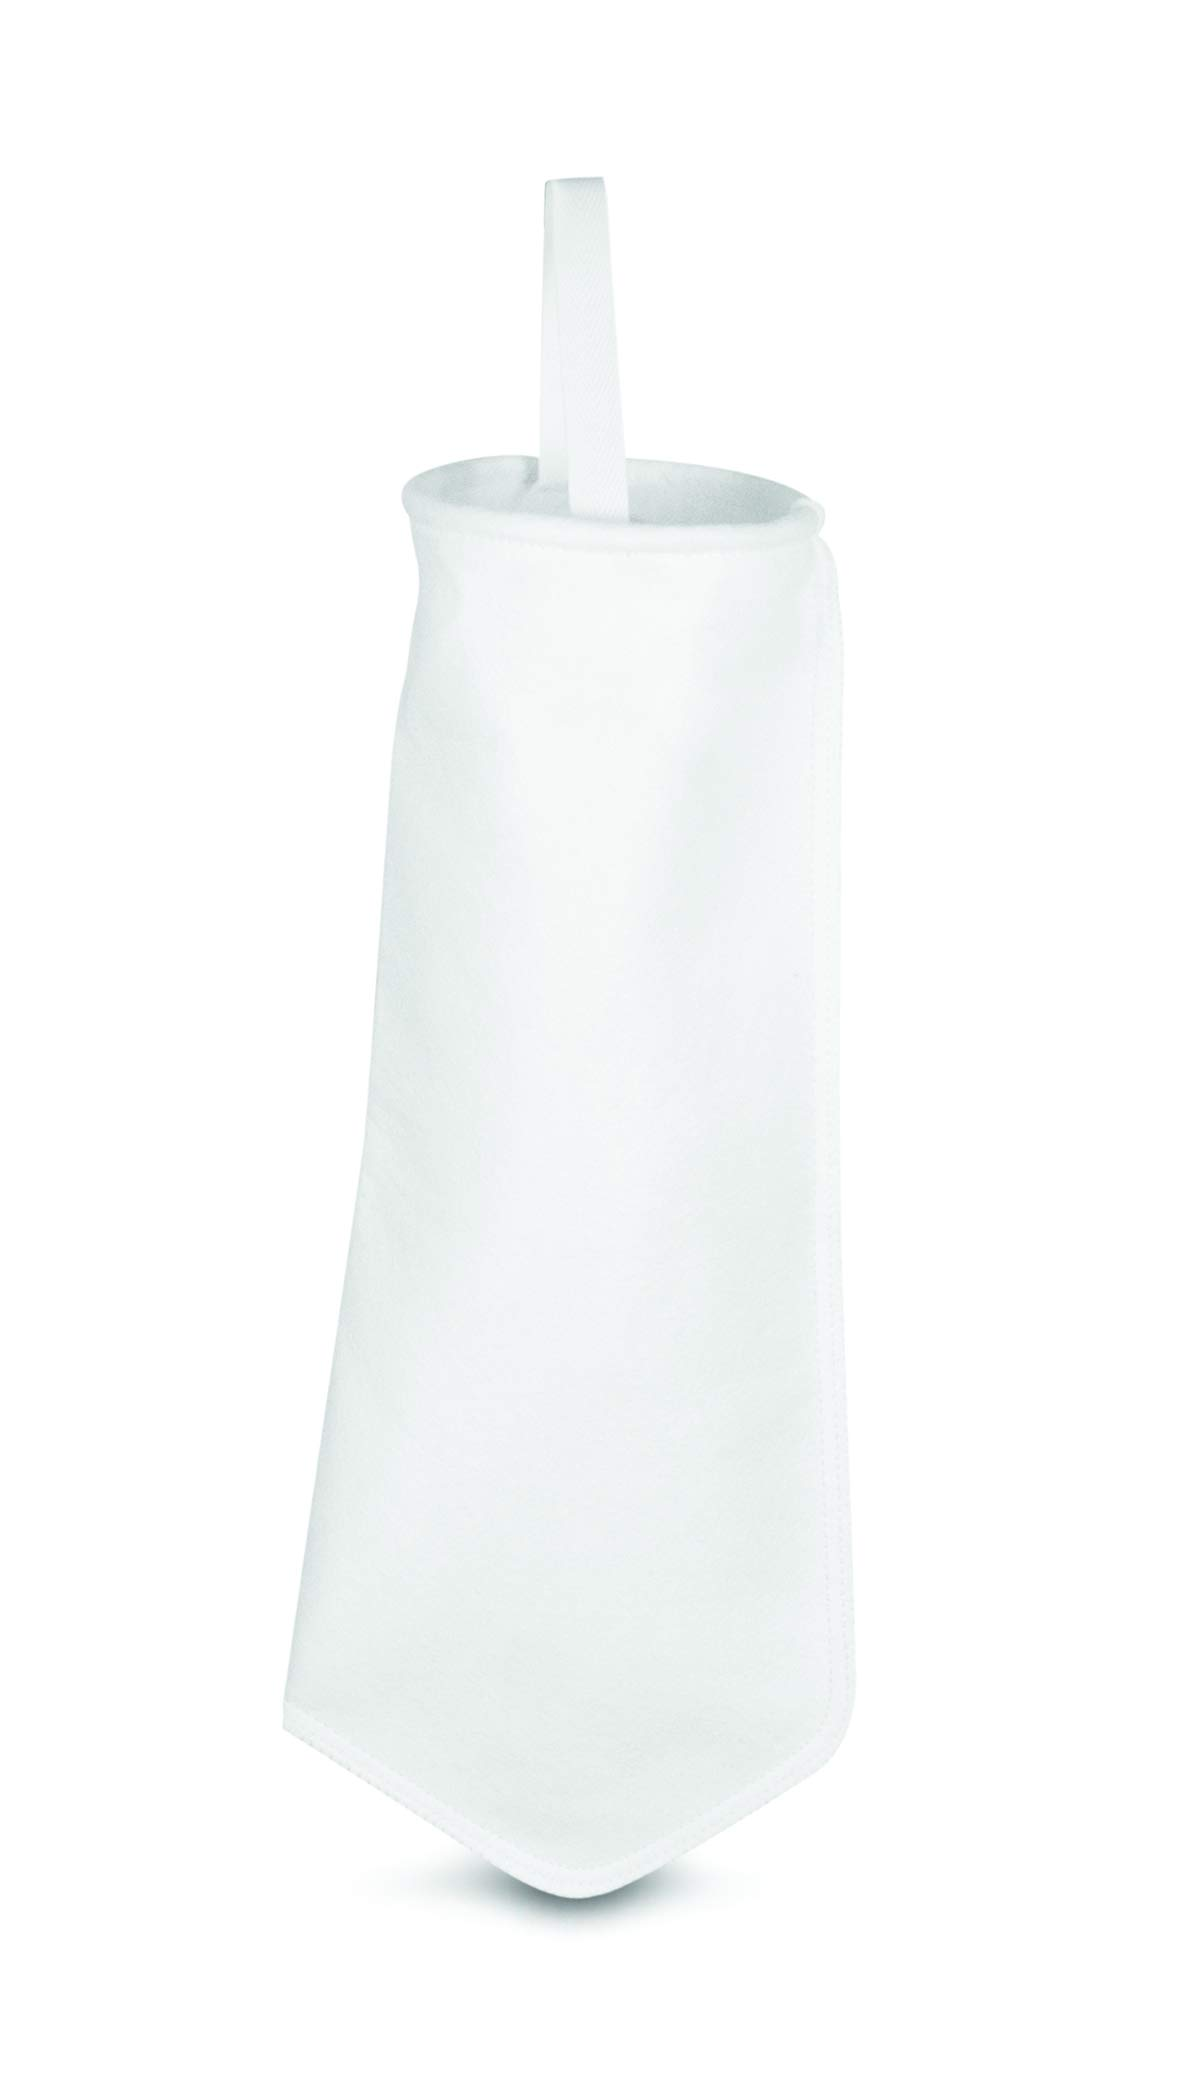 Rosedale Products, Inc. PE-15-P8S Polyester Felt Filter Bag, 6'' x 21'', White (Pack of 50) by Rosedale Products, Inc.